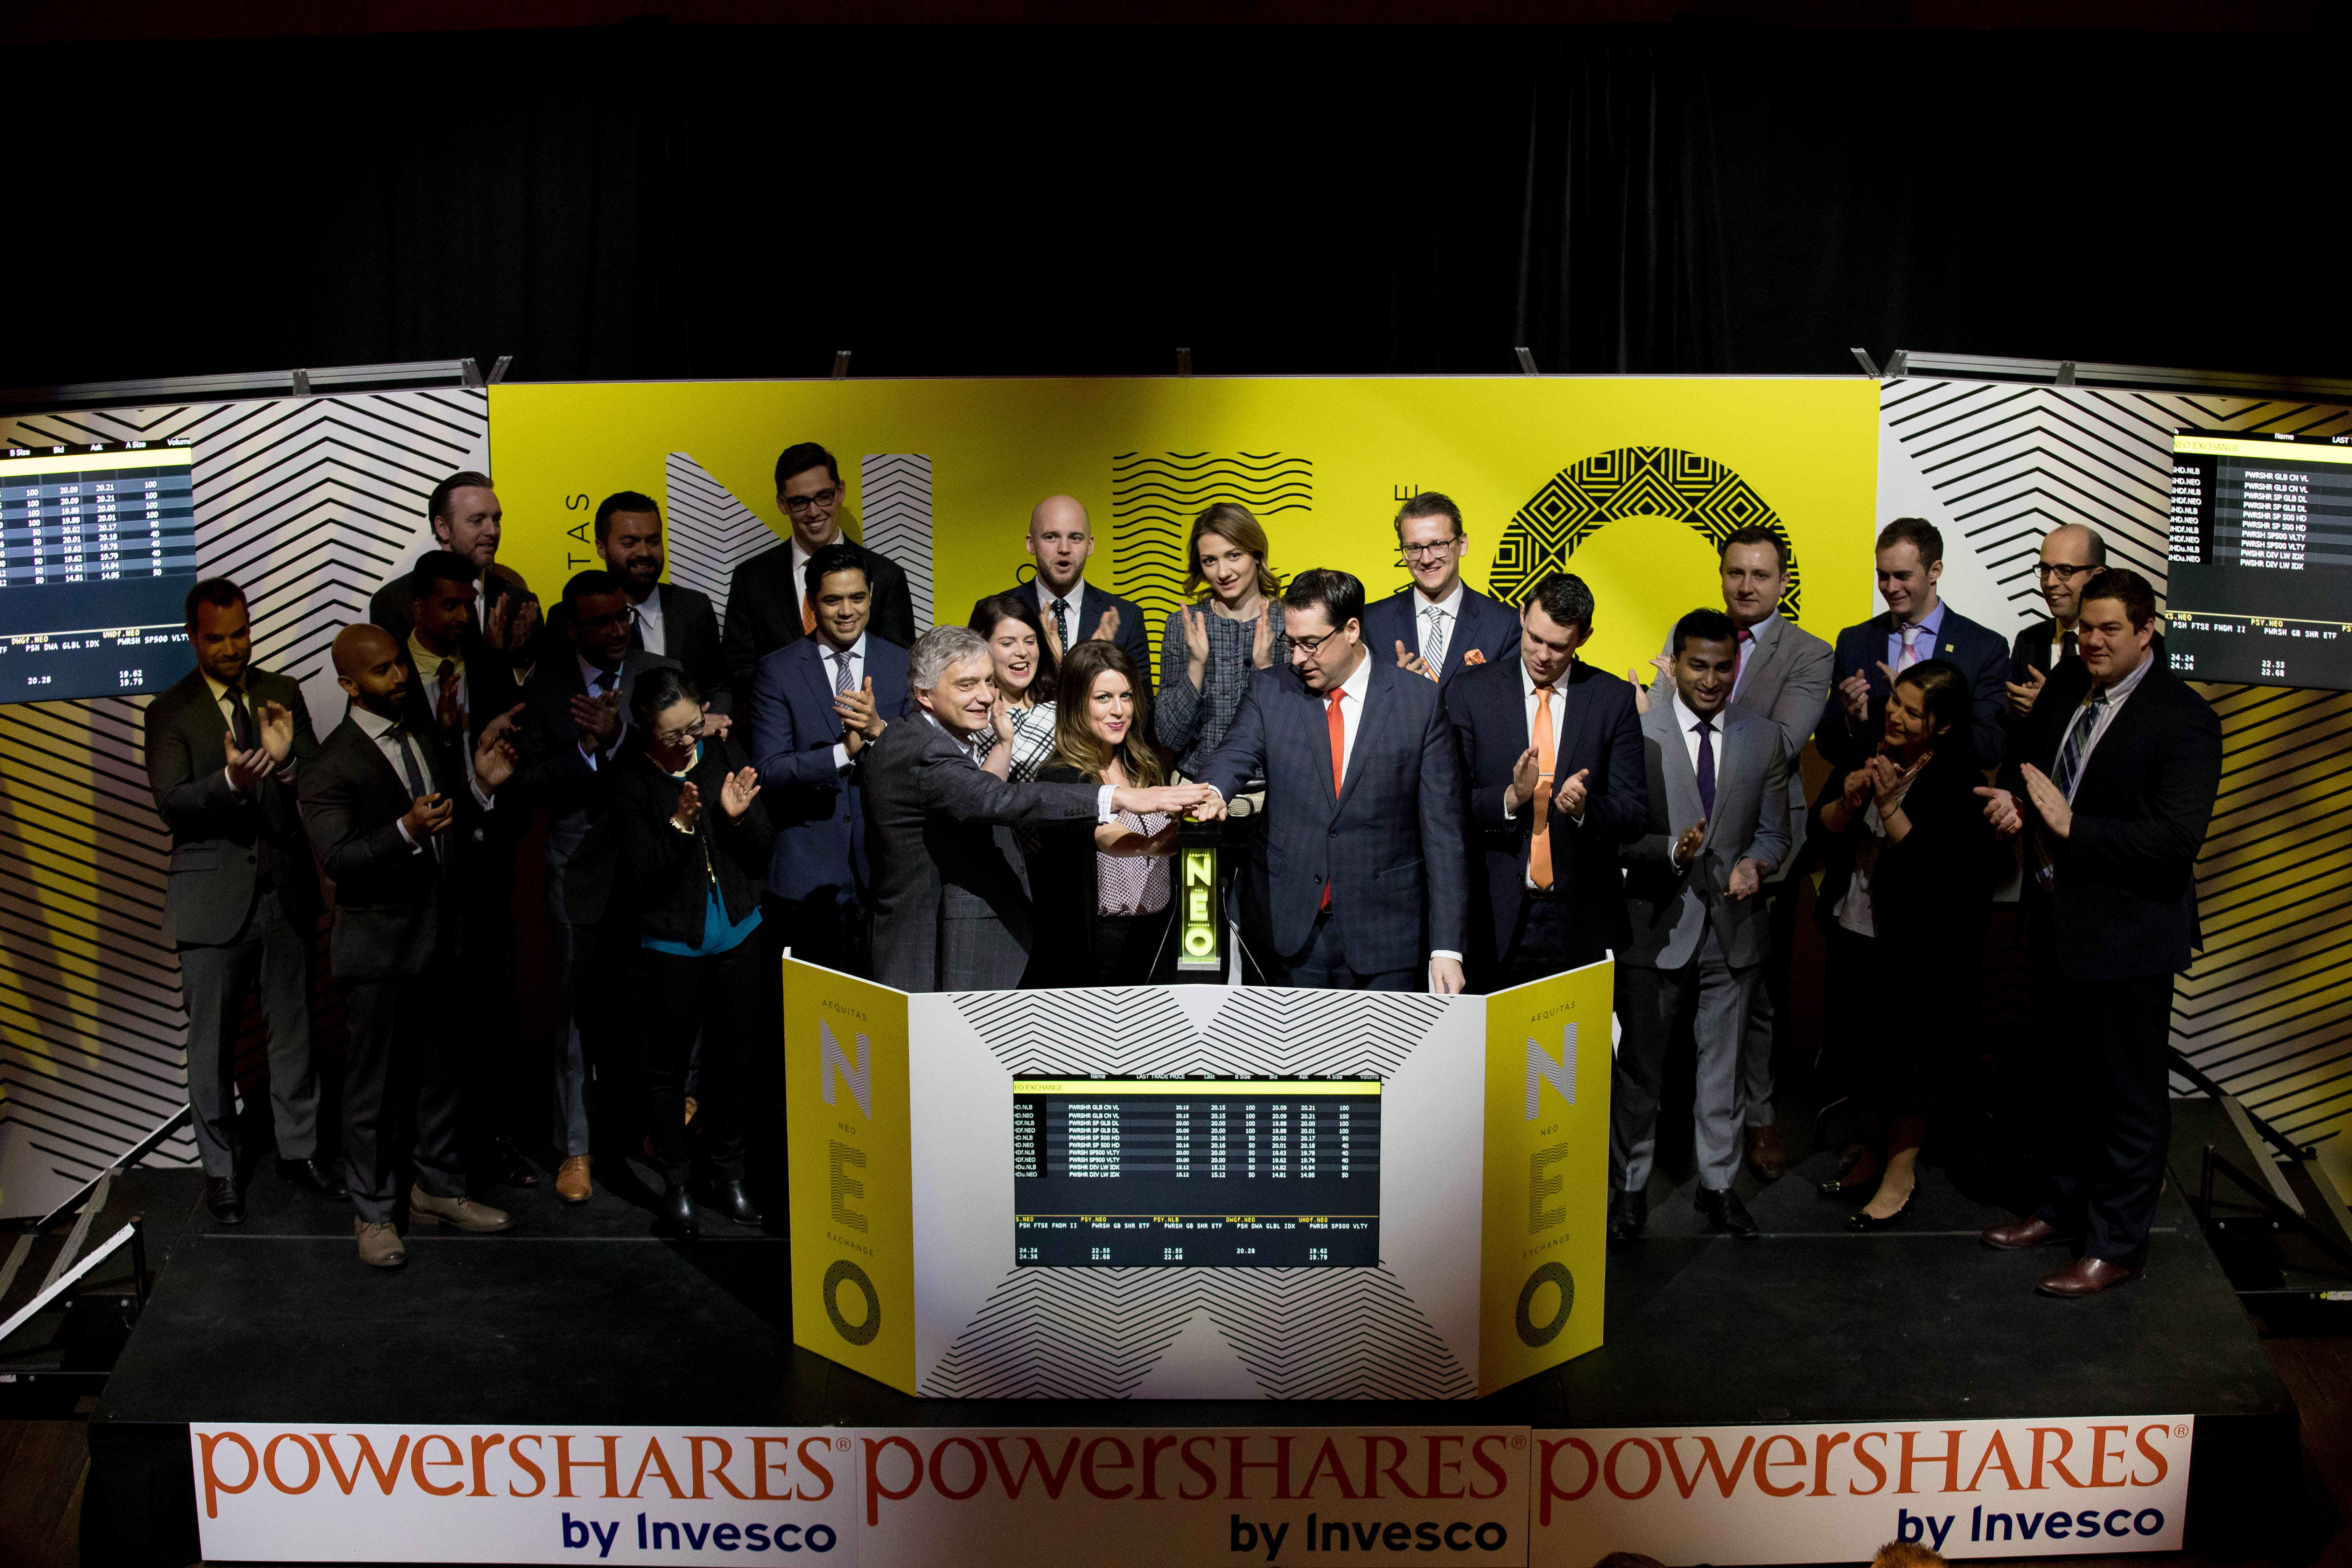 """Invesco Canada Ltd. (""""Invesco""""), including PowerShares Canada Vice President of Product and Business Development, Christopher Doll, joined Jos Schmitt, President and Chief Executive Officer, Aequitas NEO Exchange Inc. (""""NEO Exchange""""), to open the market in celebration of two new PowerShares exchange-traded-funds (ETFs), representing five ticker symbols, launching on the NEO Exchange. PowerShares ETFs seek to outperform traditional benchmark indexes while providing advisors and investors access to an innovative array of focused investment opportunities. The two high-dividend, low-volatility PowerShares ETFs commenced trading on the NEO Exchange on March 7, 2017. The two new funds are PowerShares S&P 500 High Dividend Low Volatility Index ETF (UHD, UHD.U, UHD.F) and PowerShares S&P Global ex. Canada High Dividend Low Volatility Index ETF (GHD, GHD.F). (Photo: Business Wire)"""